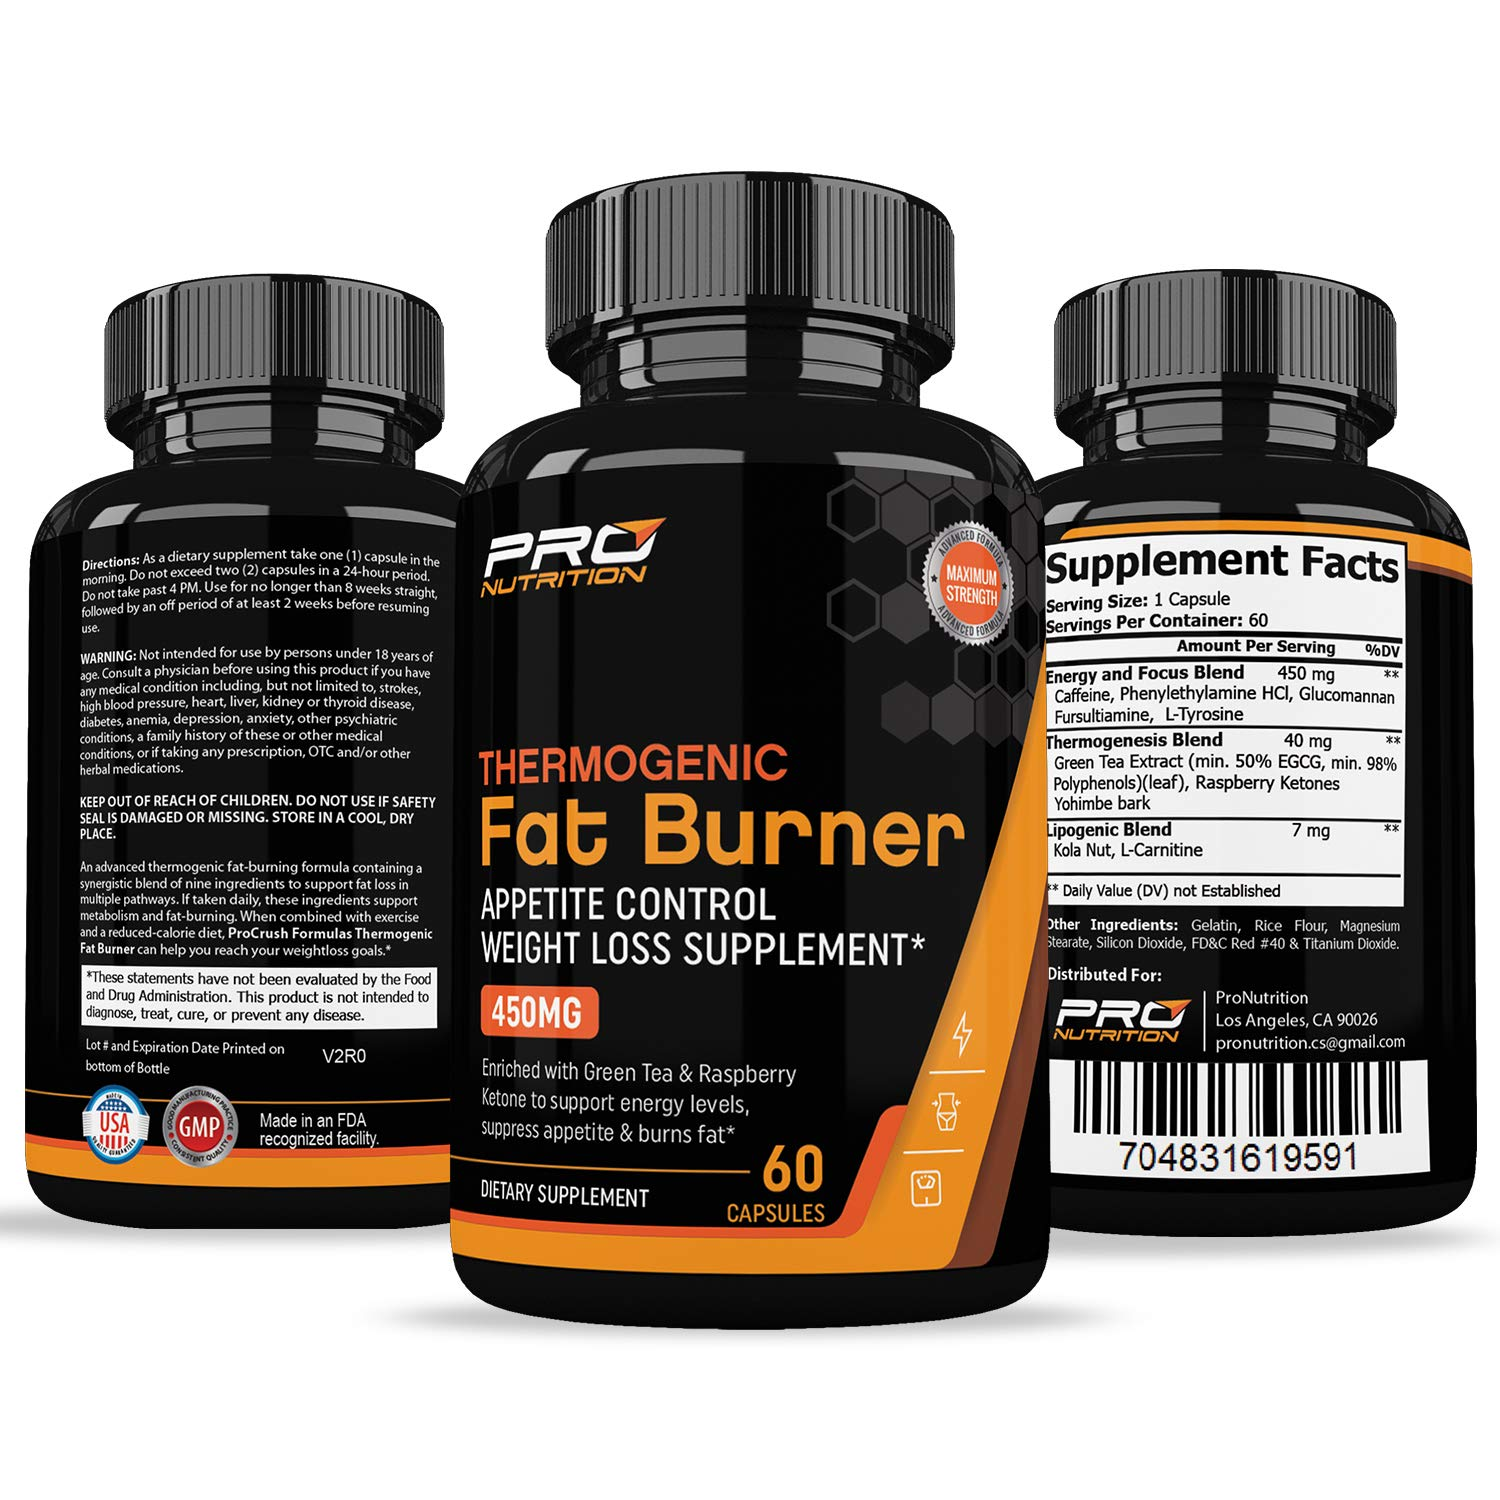 Thermogenic Fat Burner & Appetite Control Weight Loss Supplement- Revolutionary Formula That Increases Metabolism & Burns Fat. Superior Appetite Suppressant & Increases Energy for Men & Women